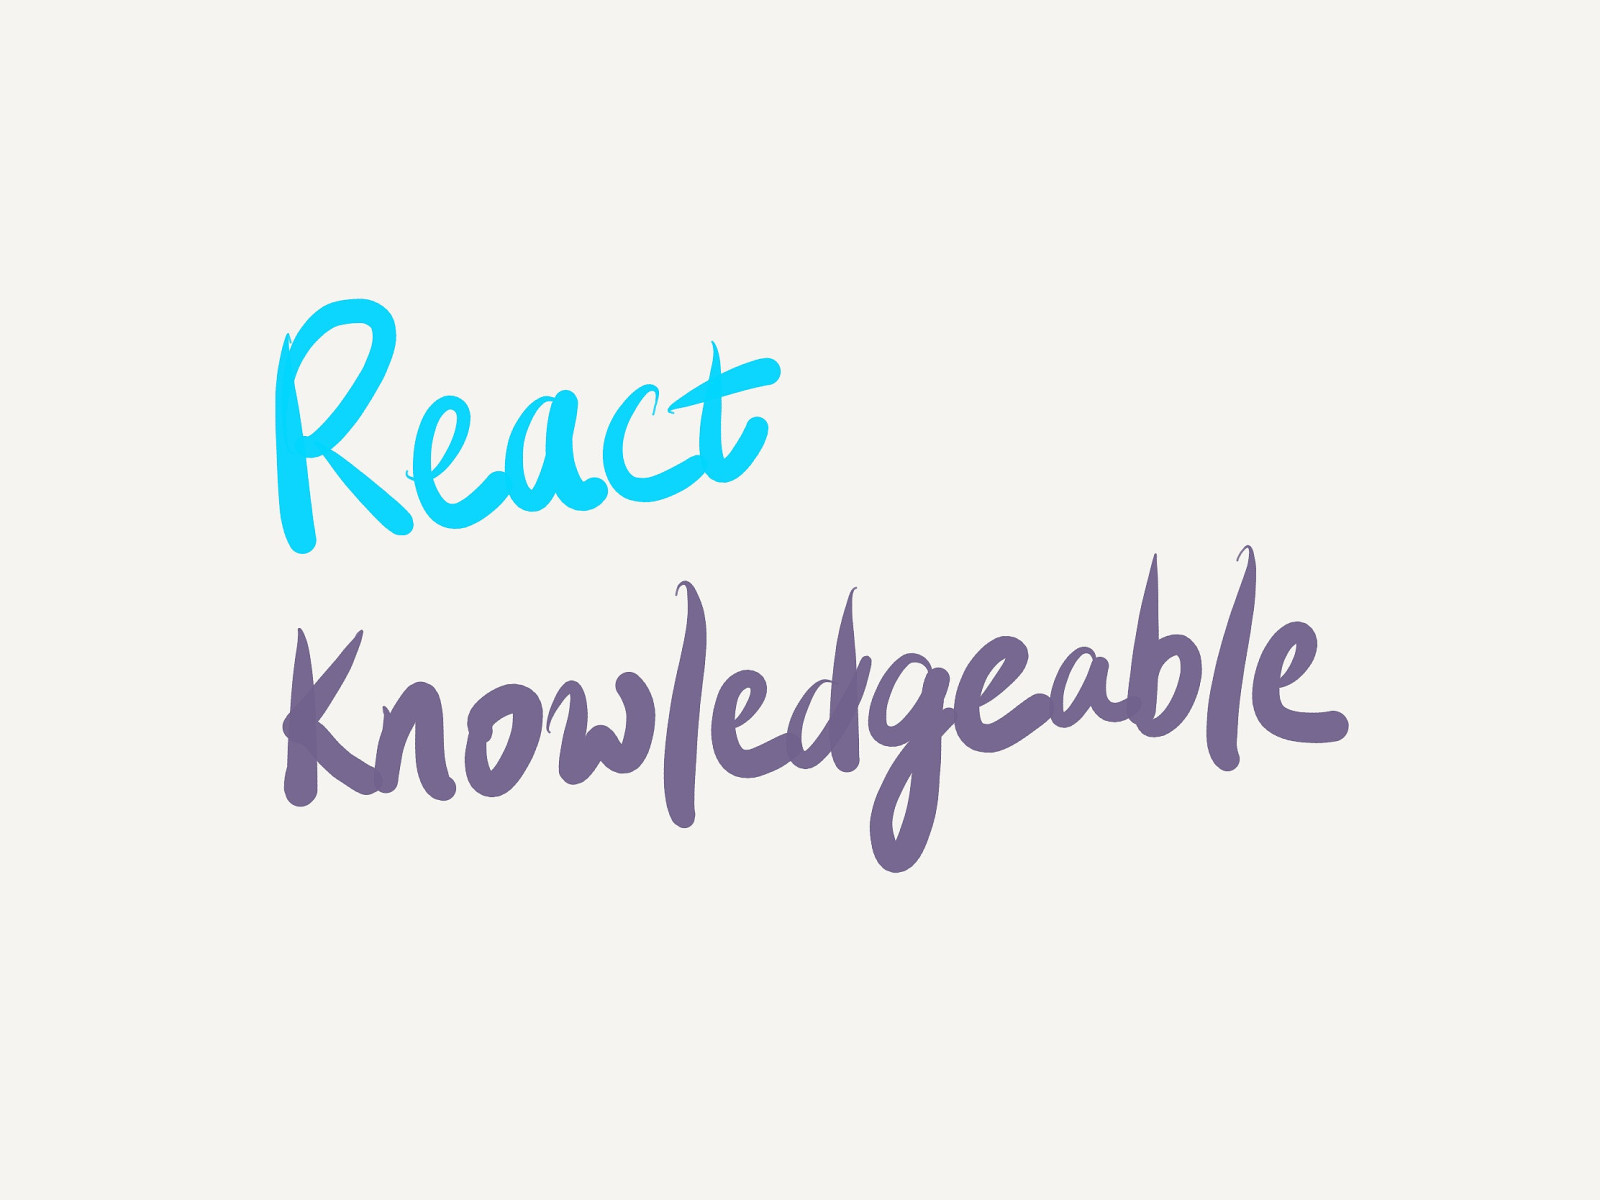 Introducing React Knowledgeable